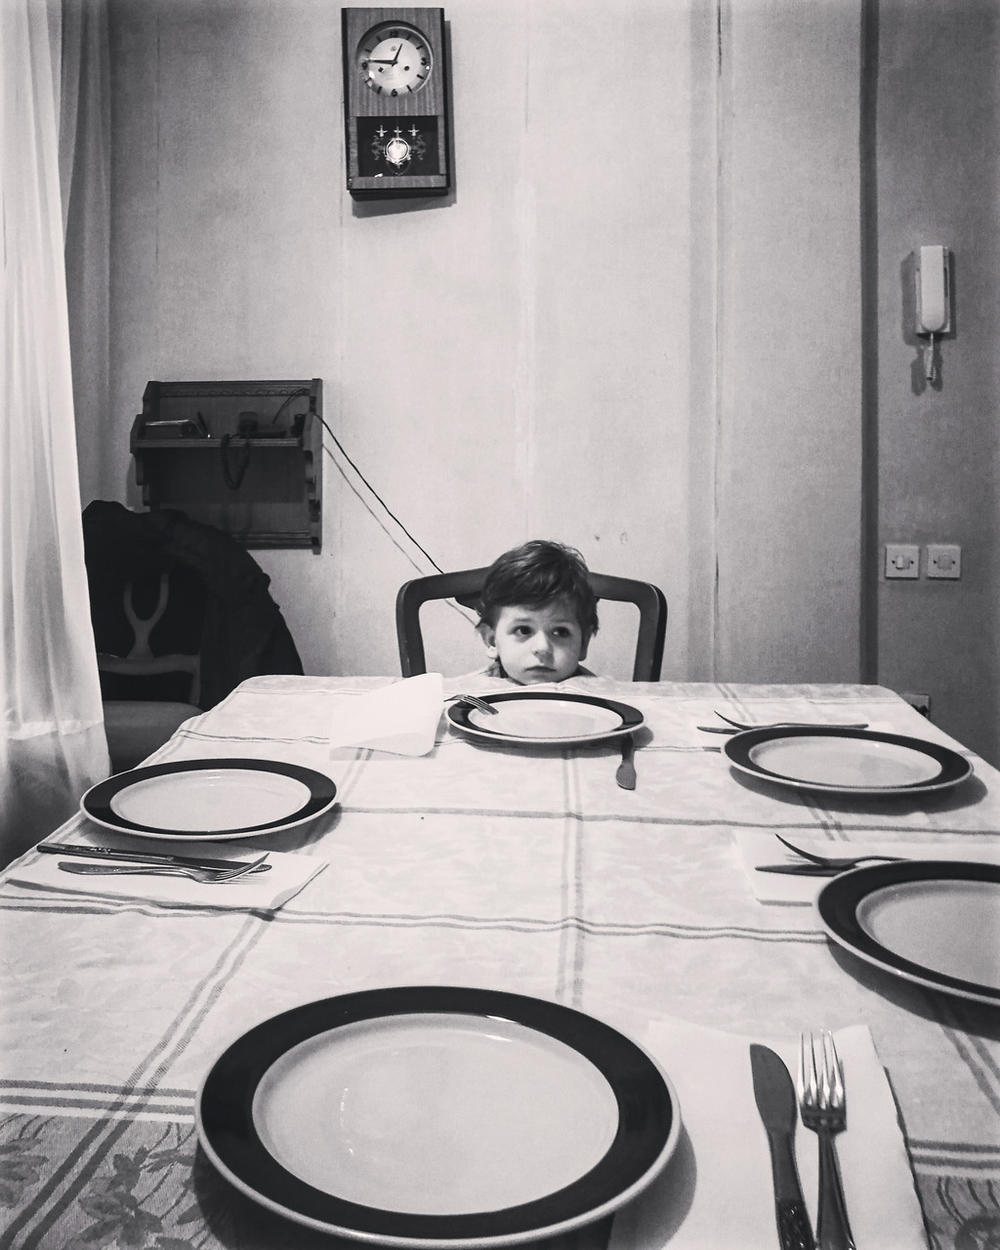 Long Waiting for a Family Lunch, © Marko Risovic, Huawei Next-Image Awards